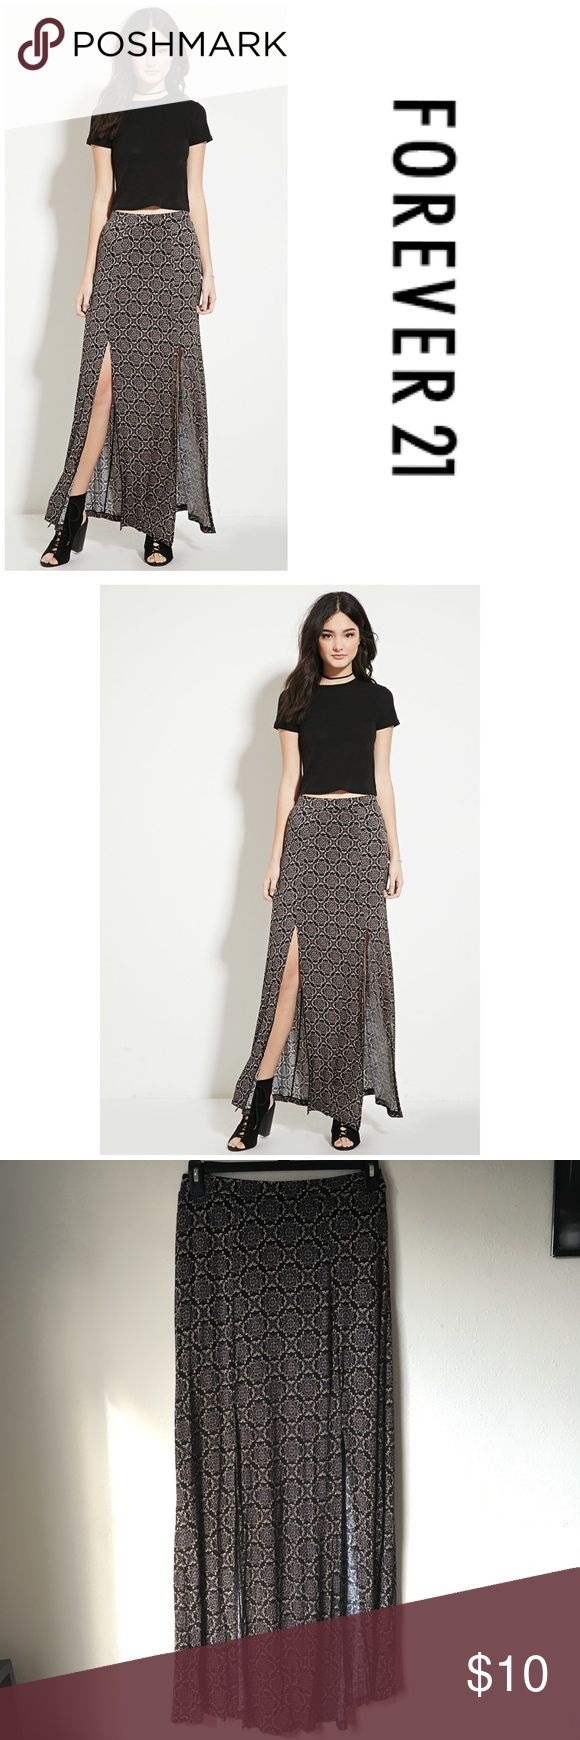 Forever 21 Maxi Skirt with Slits Gorgeous Maxi Skirt from Forever 21. Has sexy high slits. Very soft material, has stretch. Has an inner, short skirt lining. Forever 21 Skirts Maxi